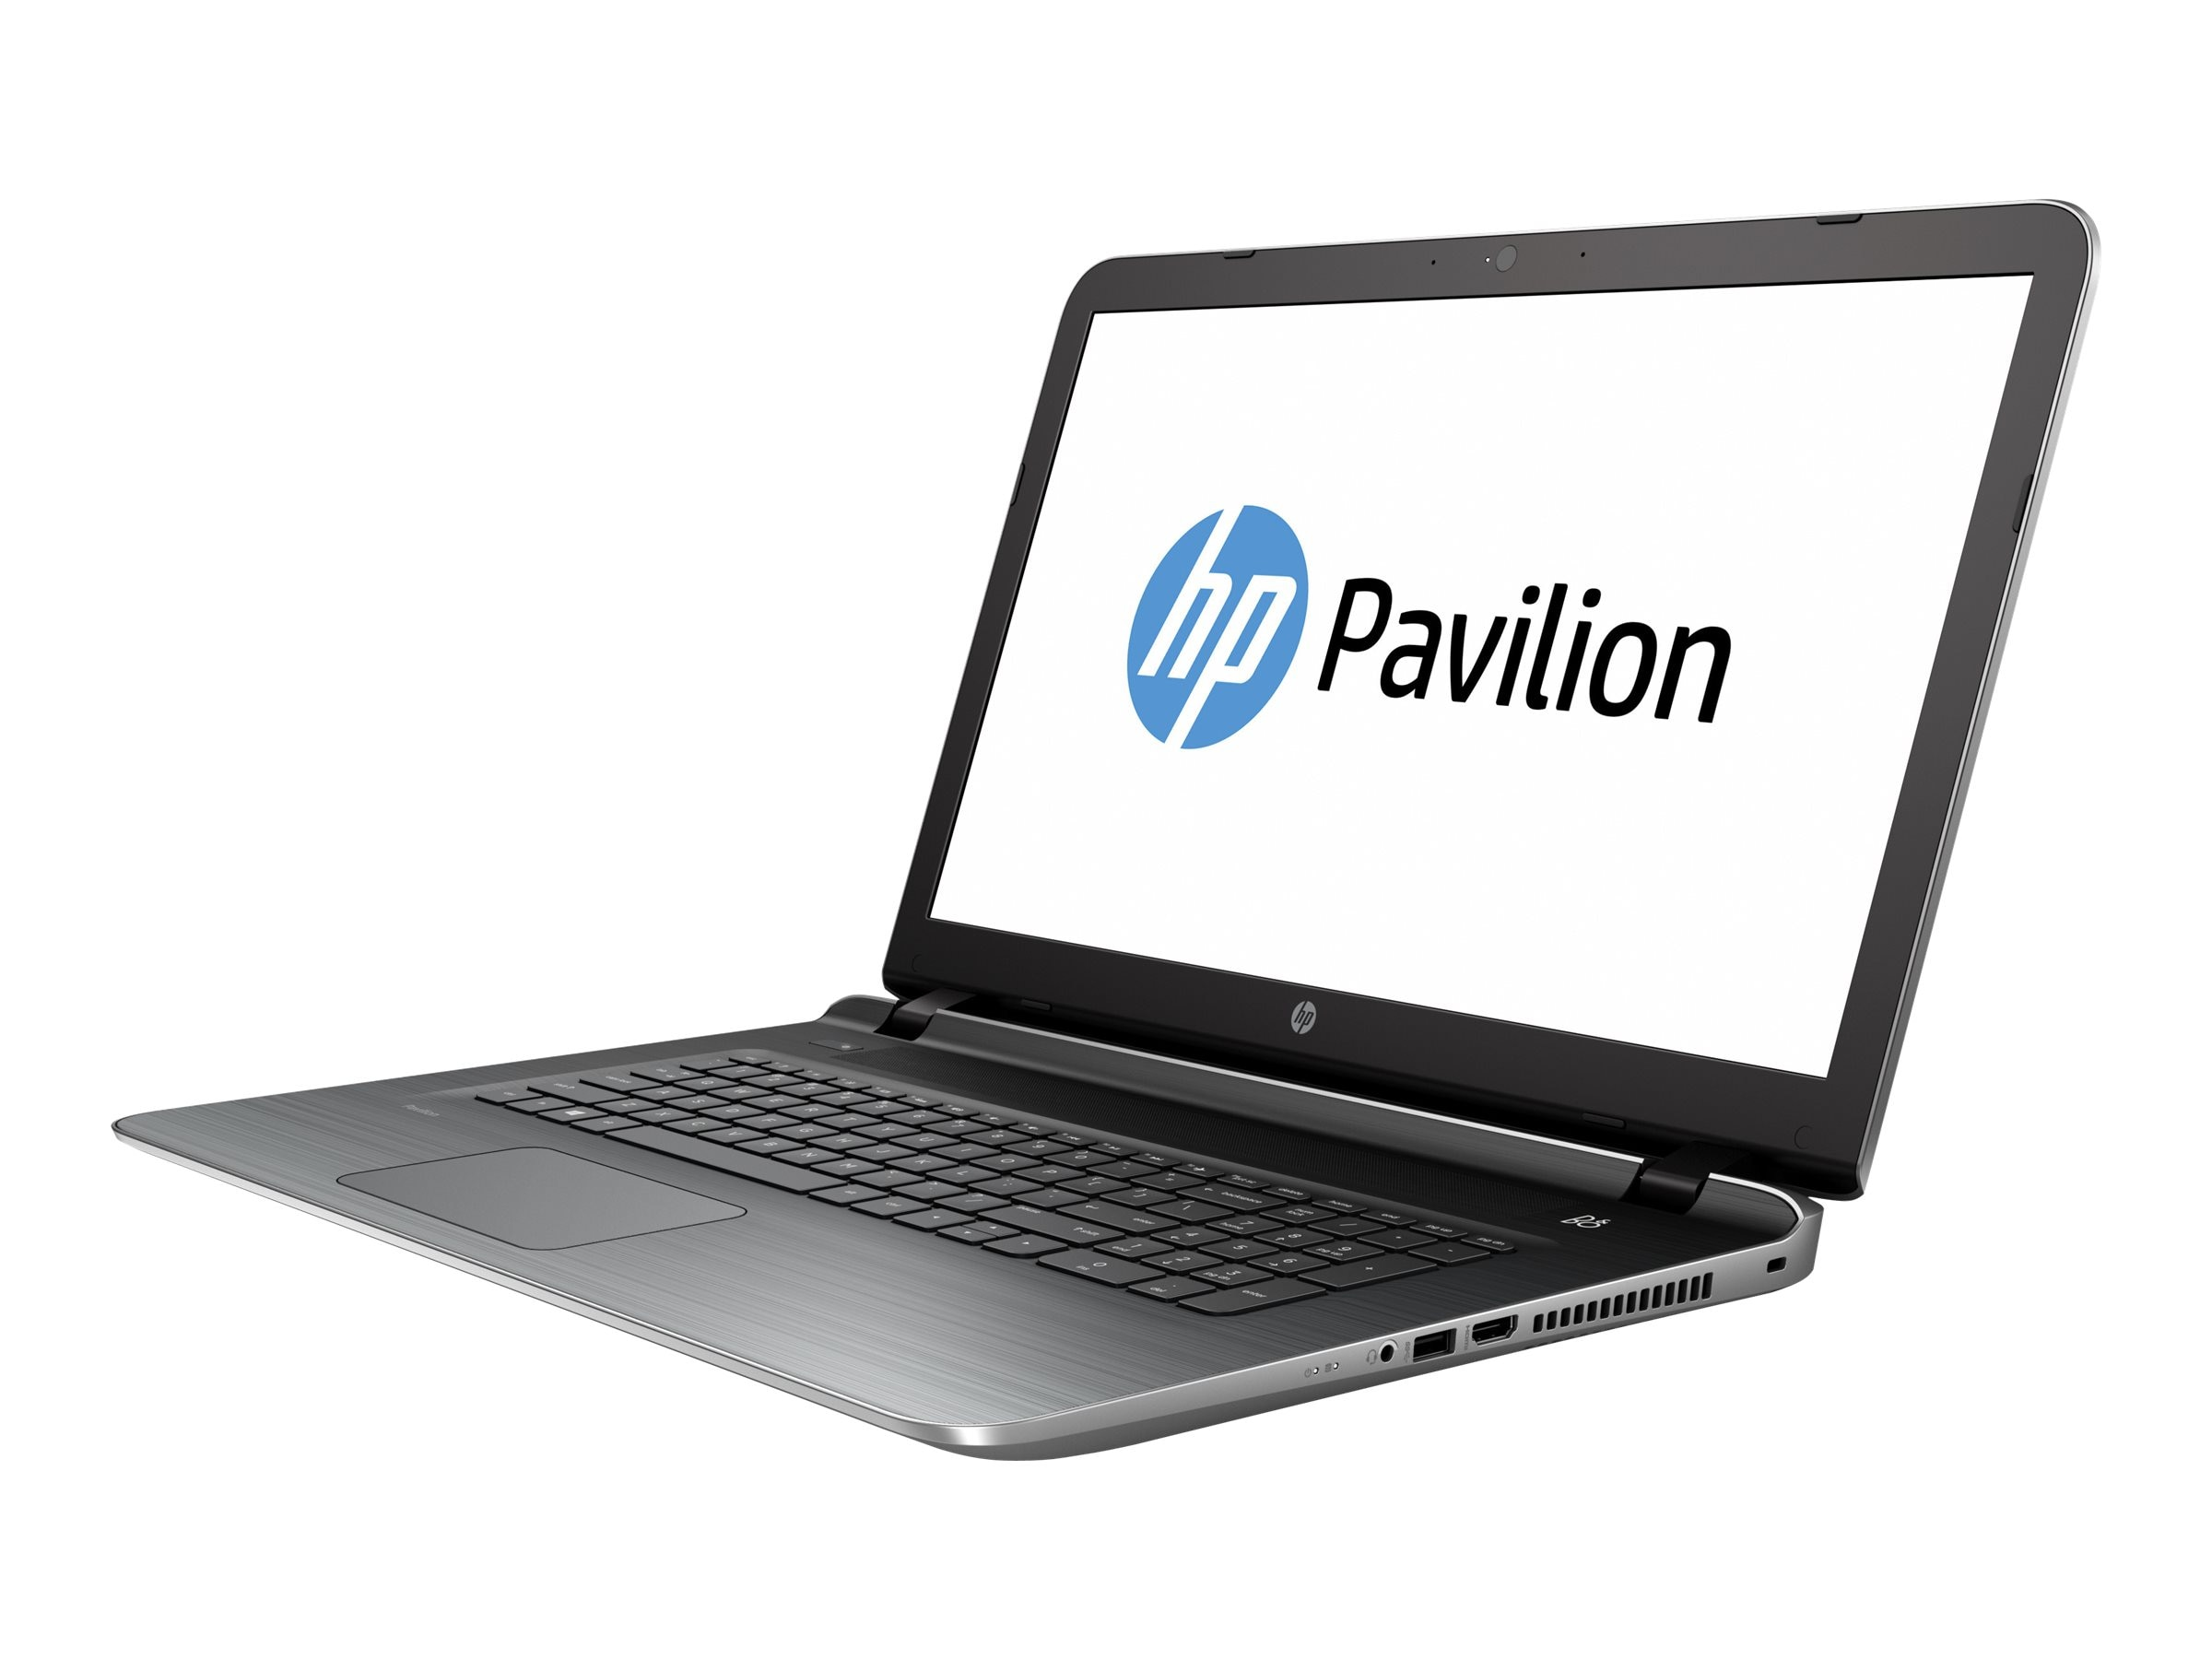 HP Pavilion 17-G163nr Notebook PC